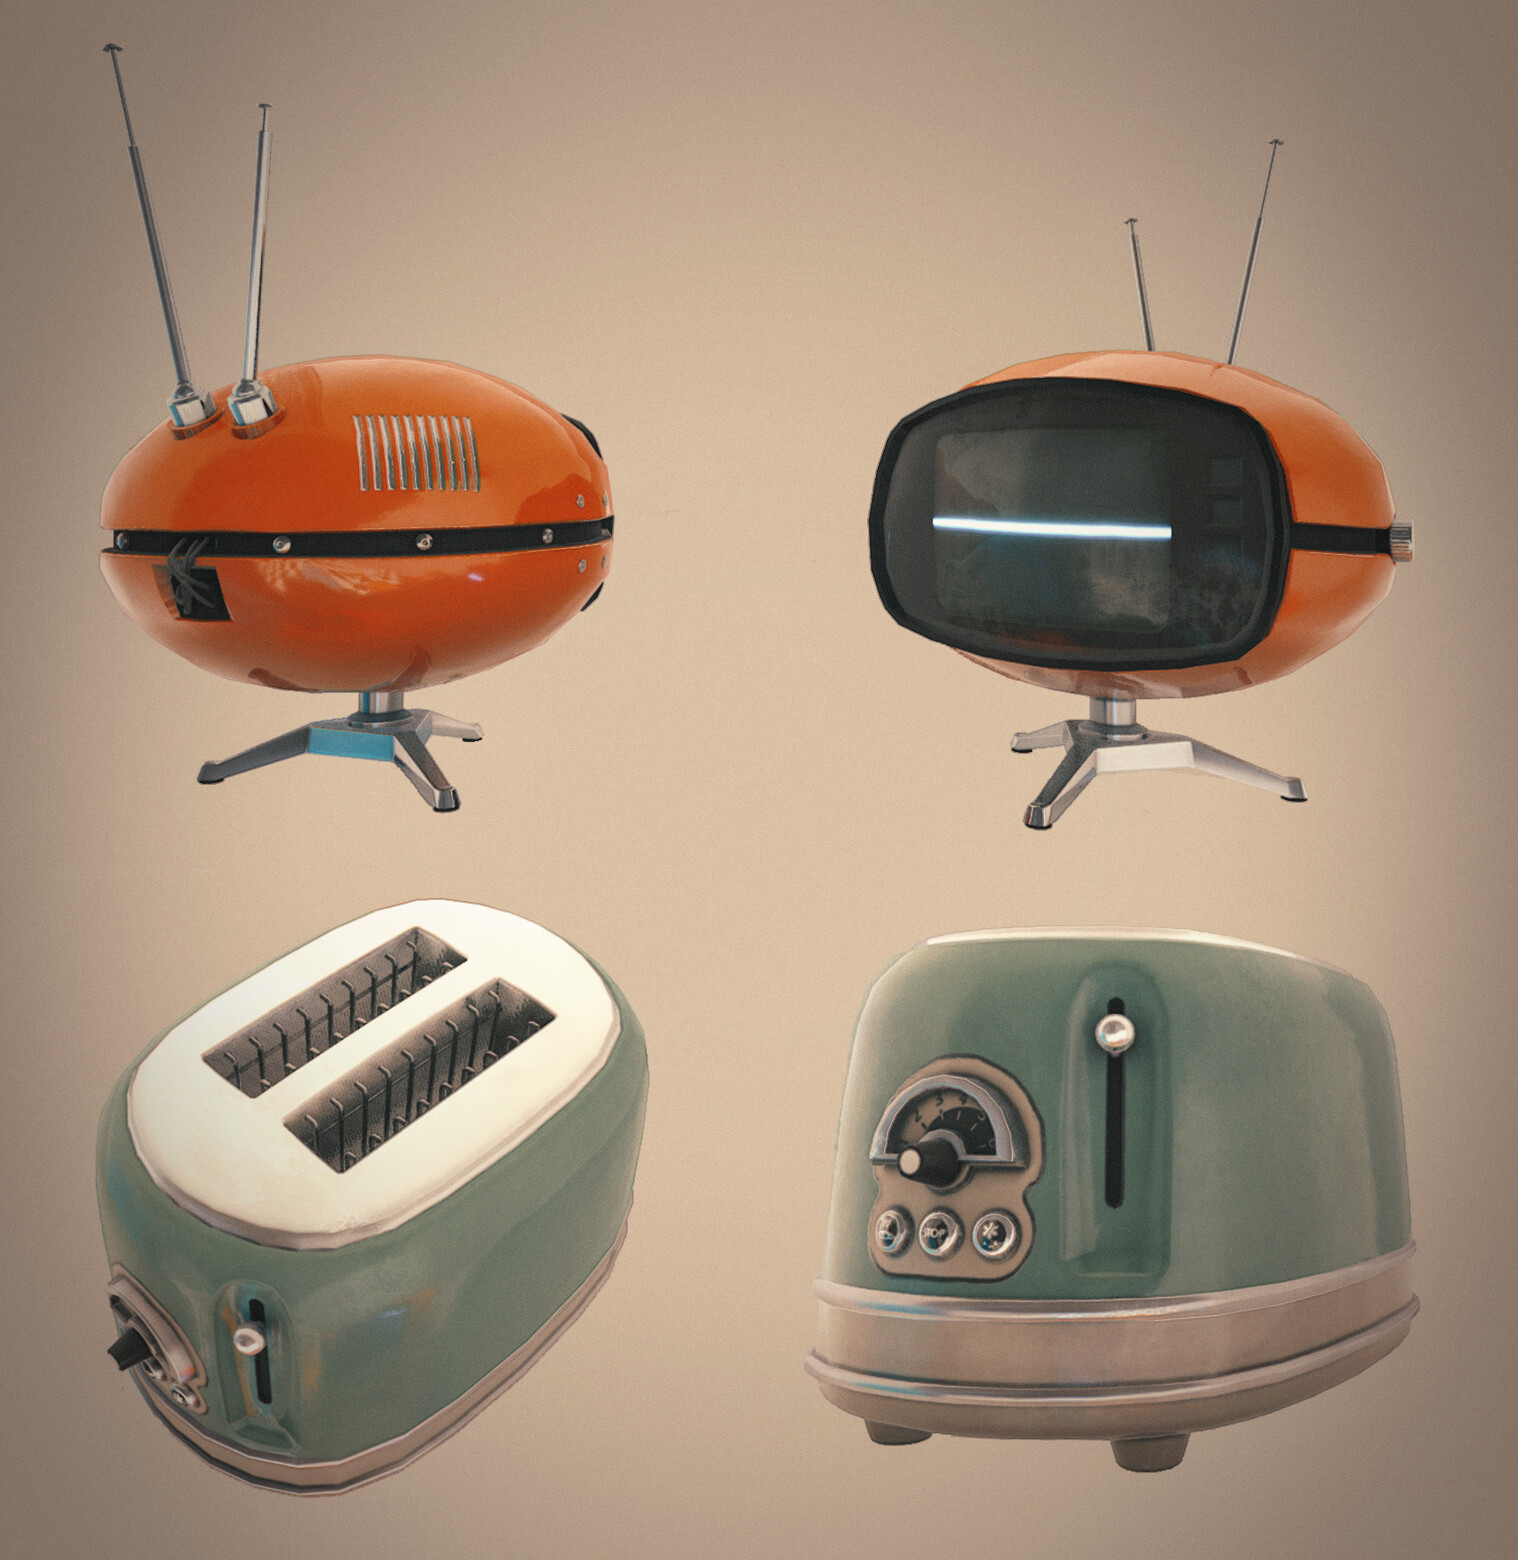 TV and Toaster